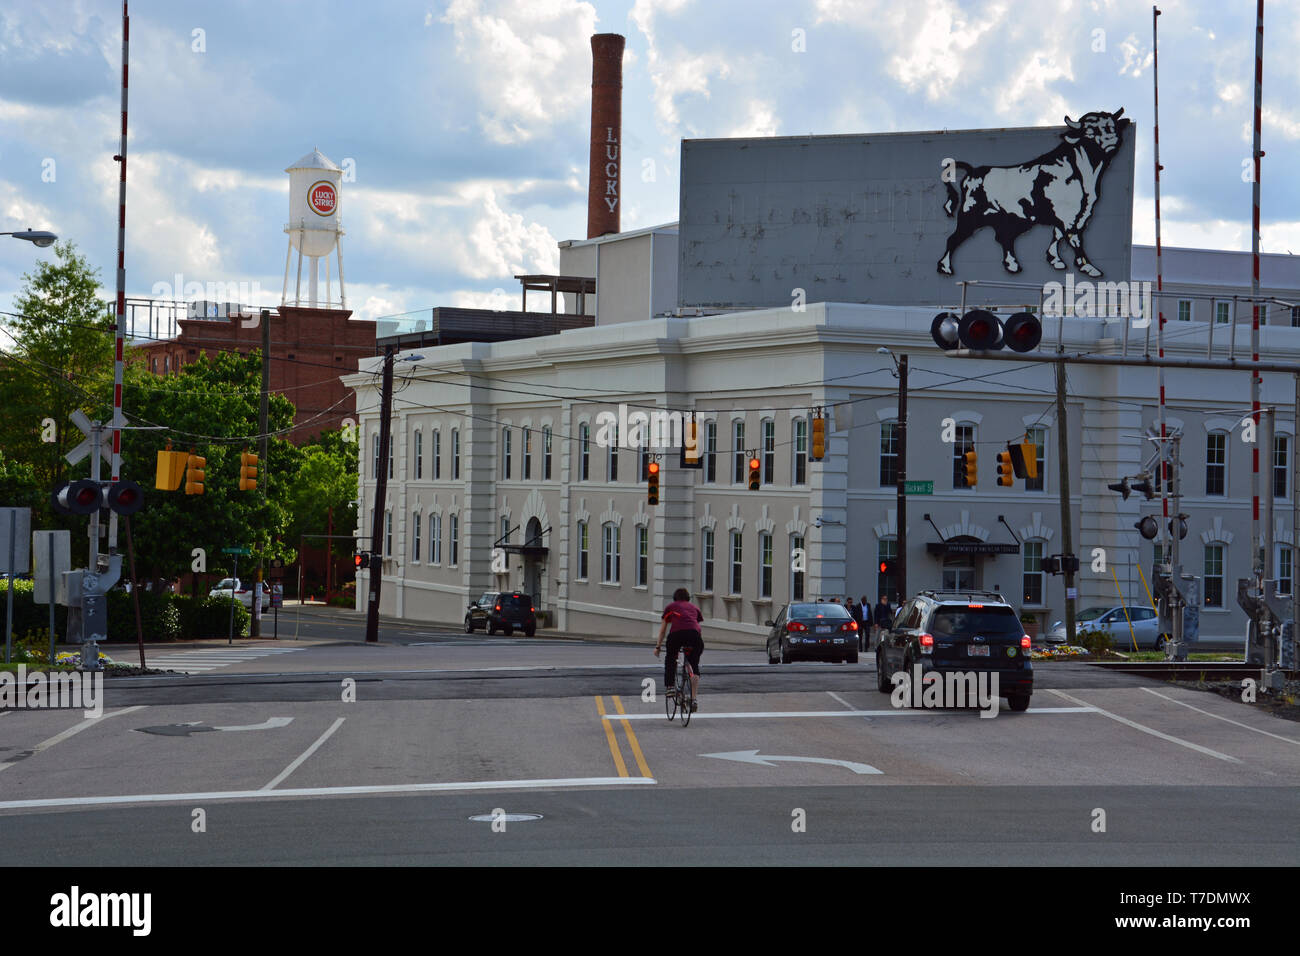 Downtown Durham North Carolina, also known as the Bull City for it's history with cigarettes and Bull Durham Tobacco, once manufactured here. - Stock Image